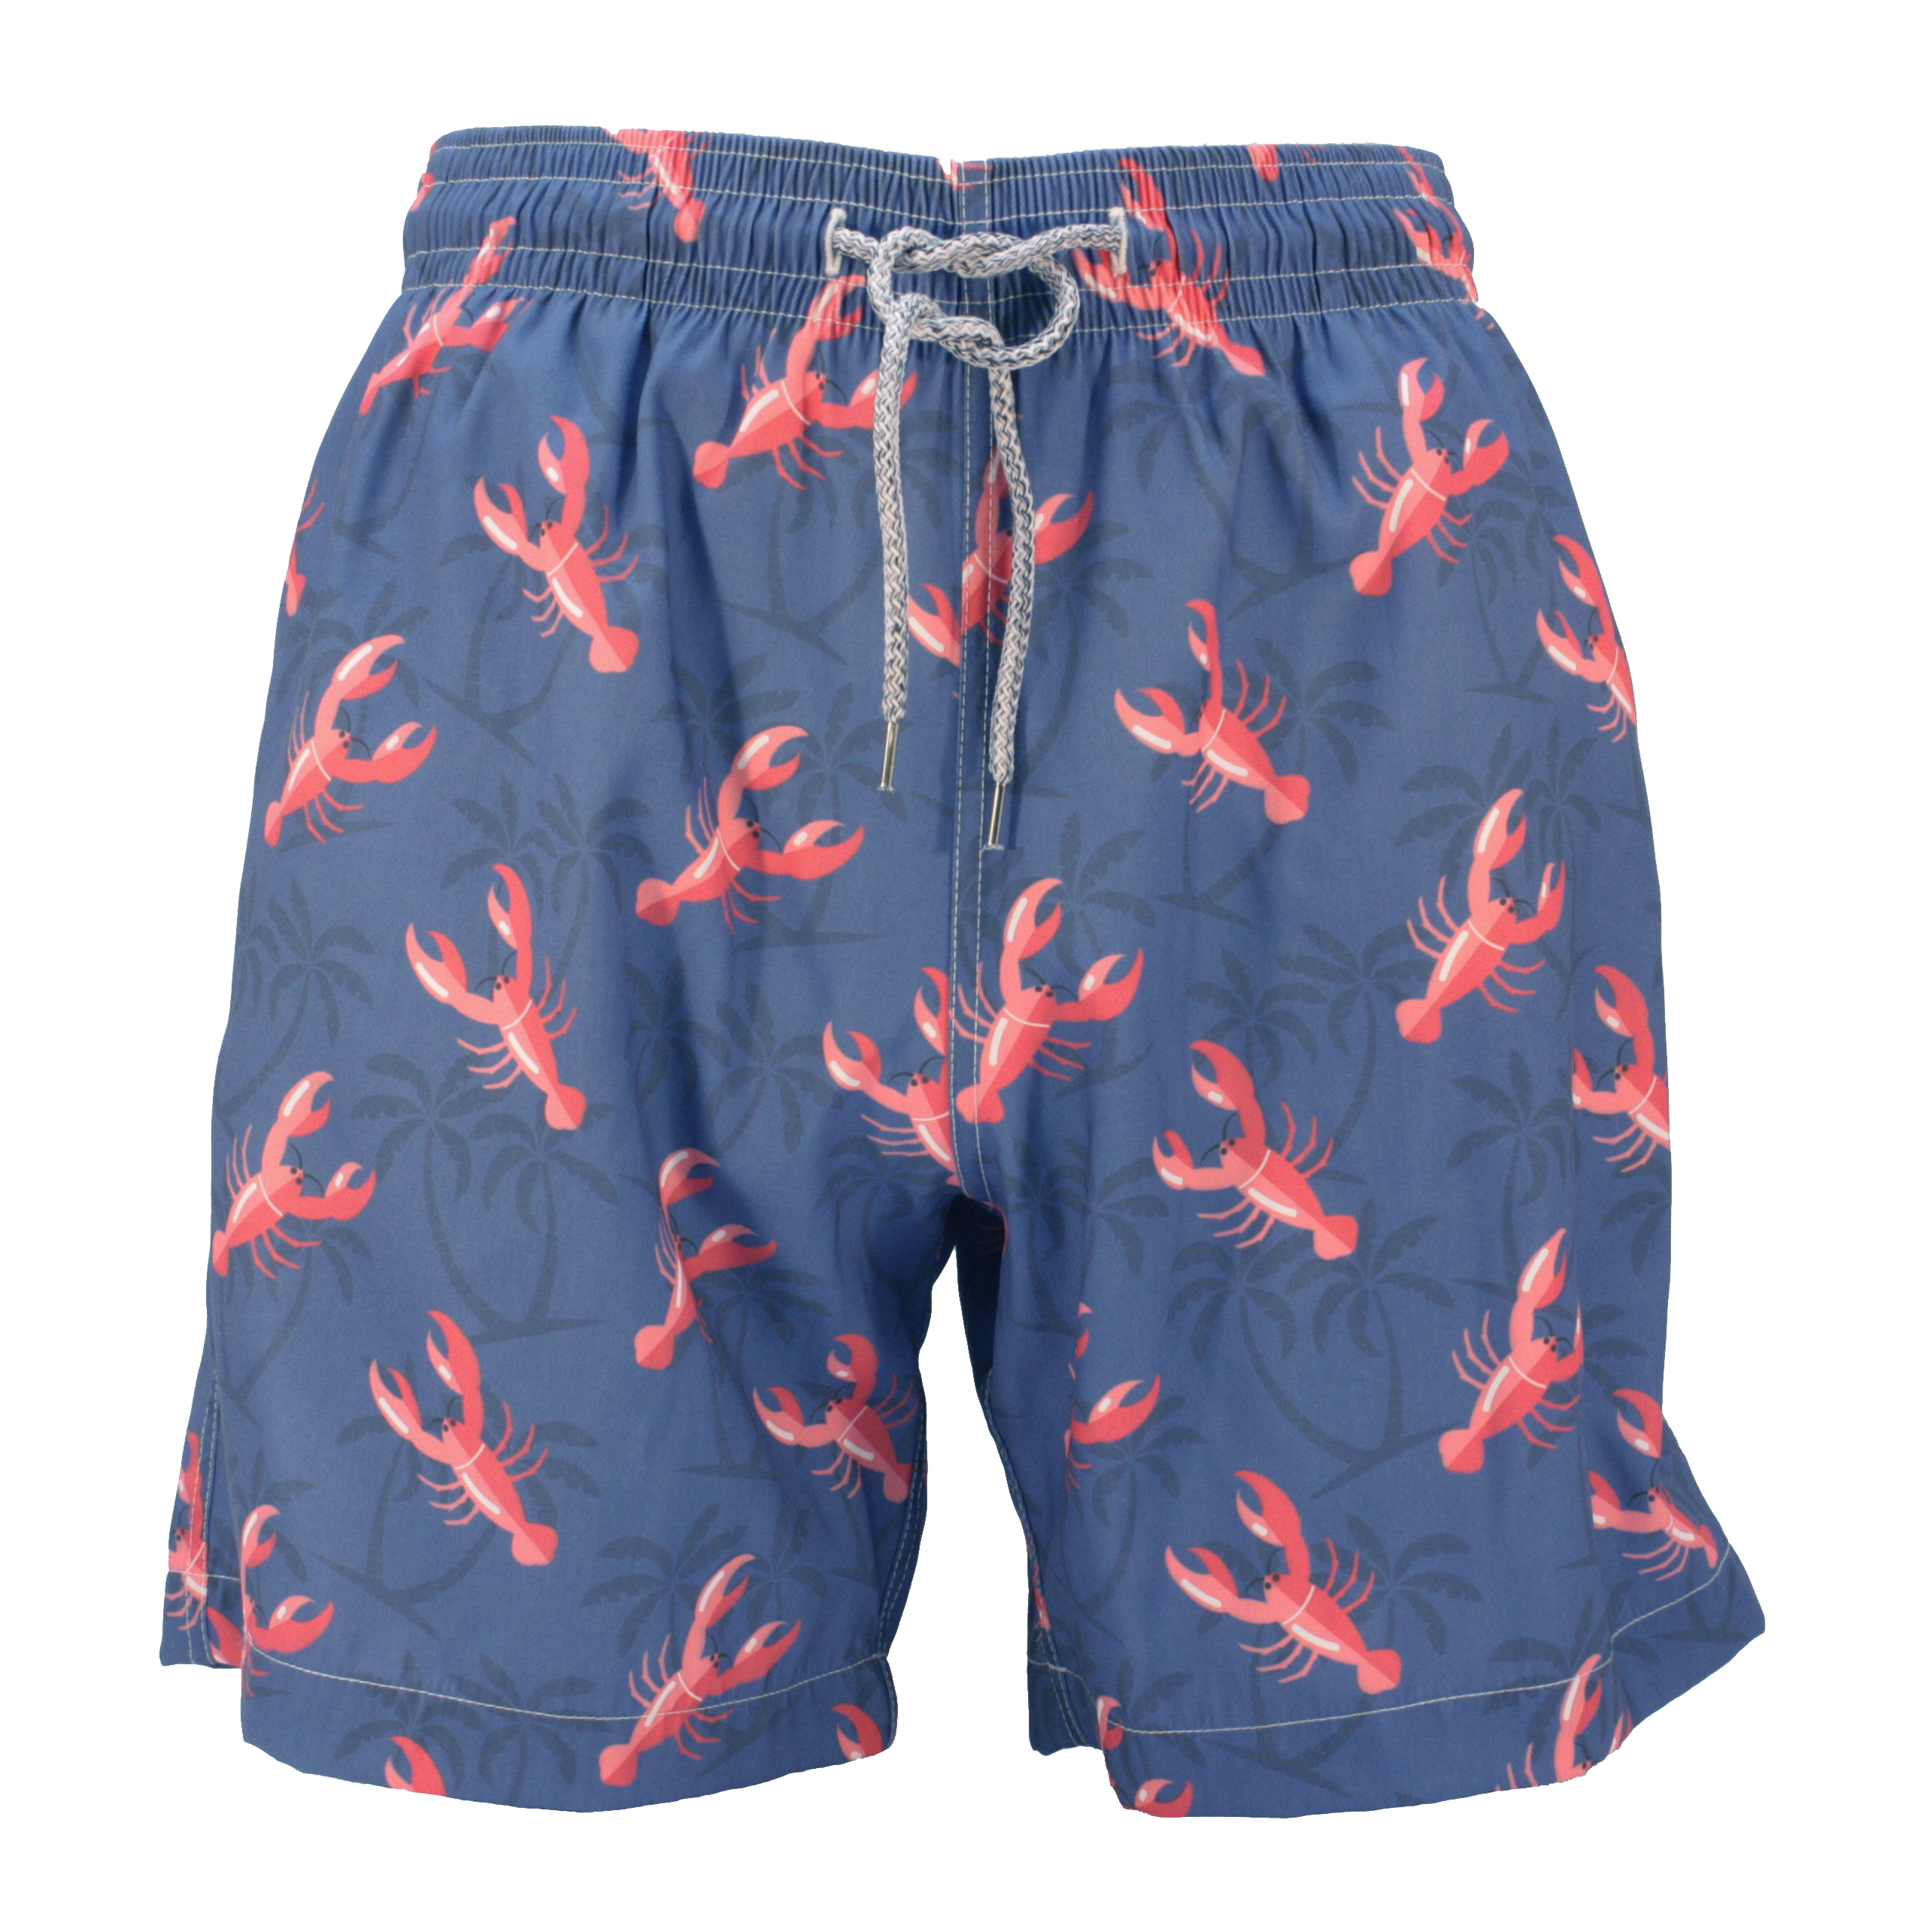 Reef Knots Men's Dark Blue Lobster Swim Shorts